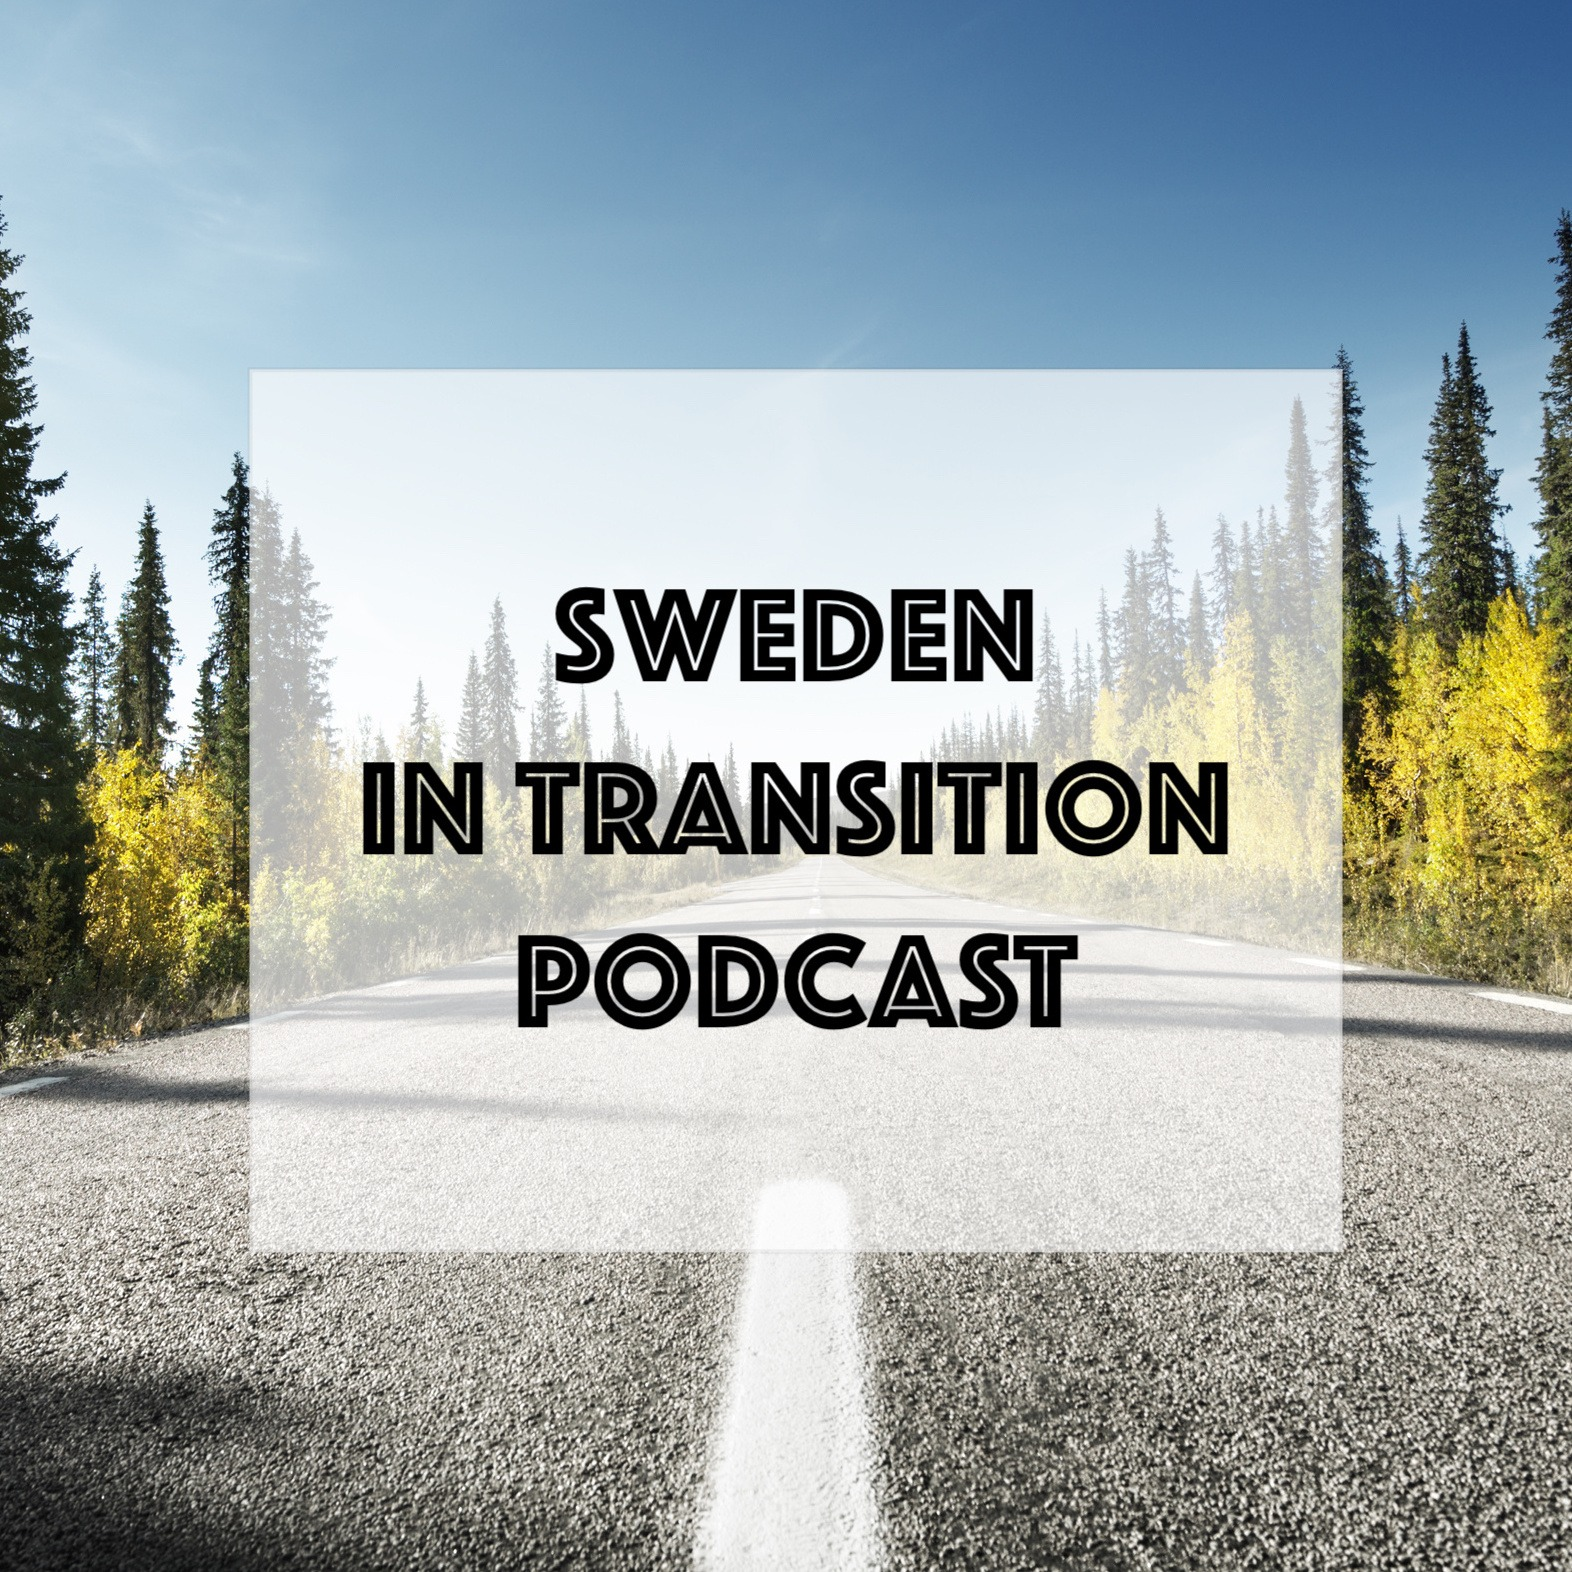 Link to Sweden in Transition